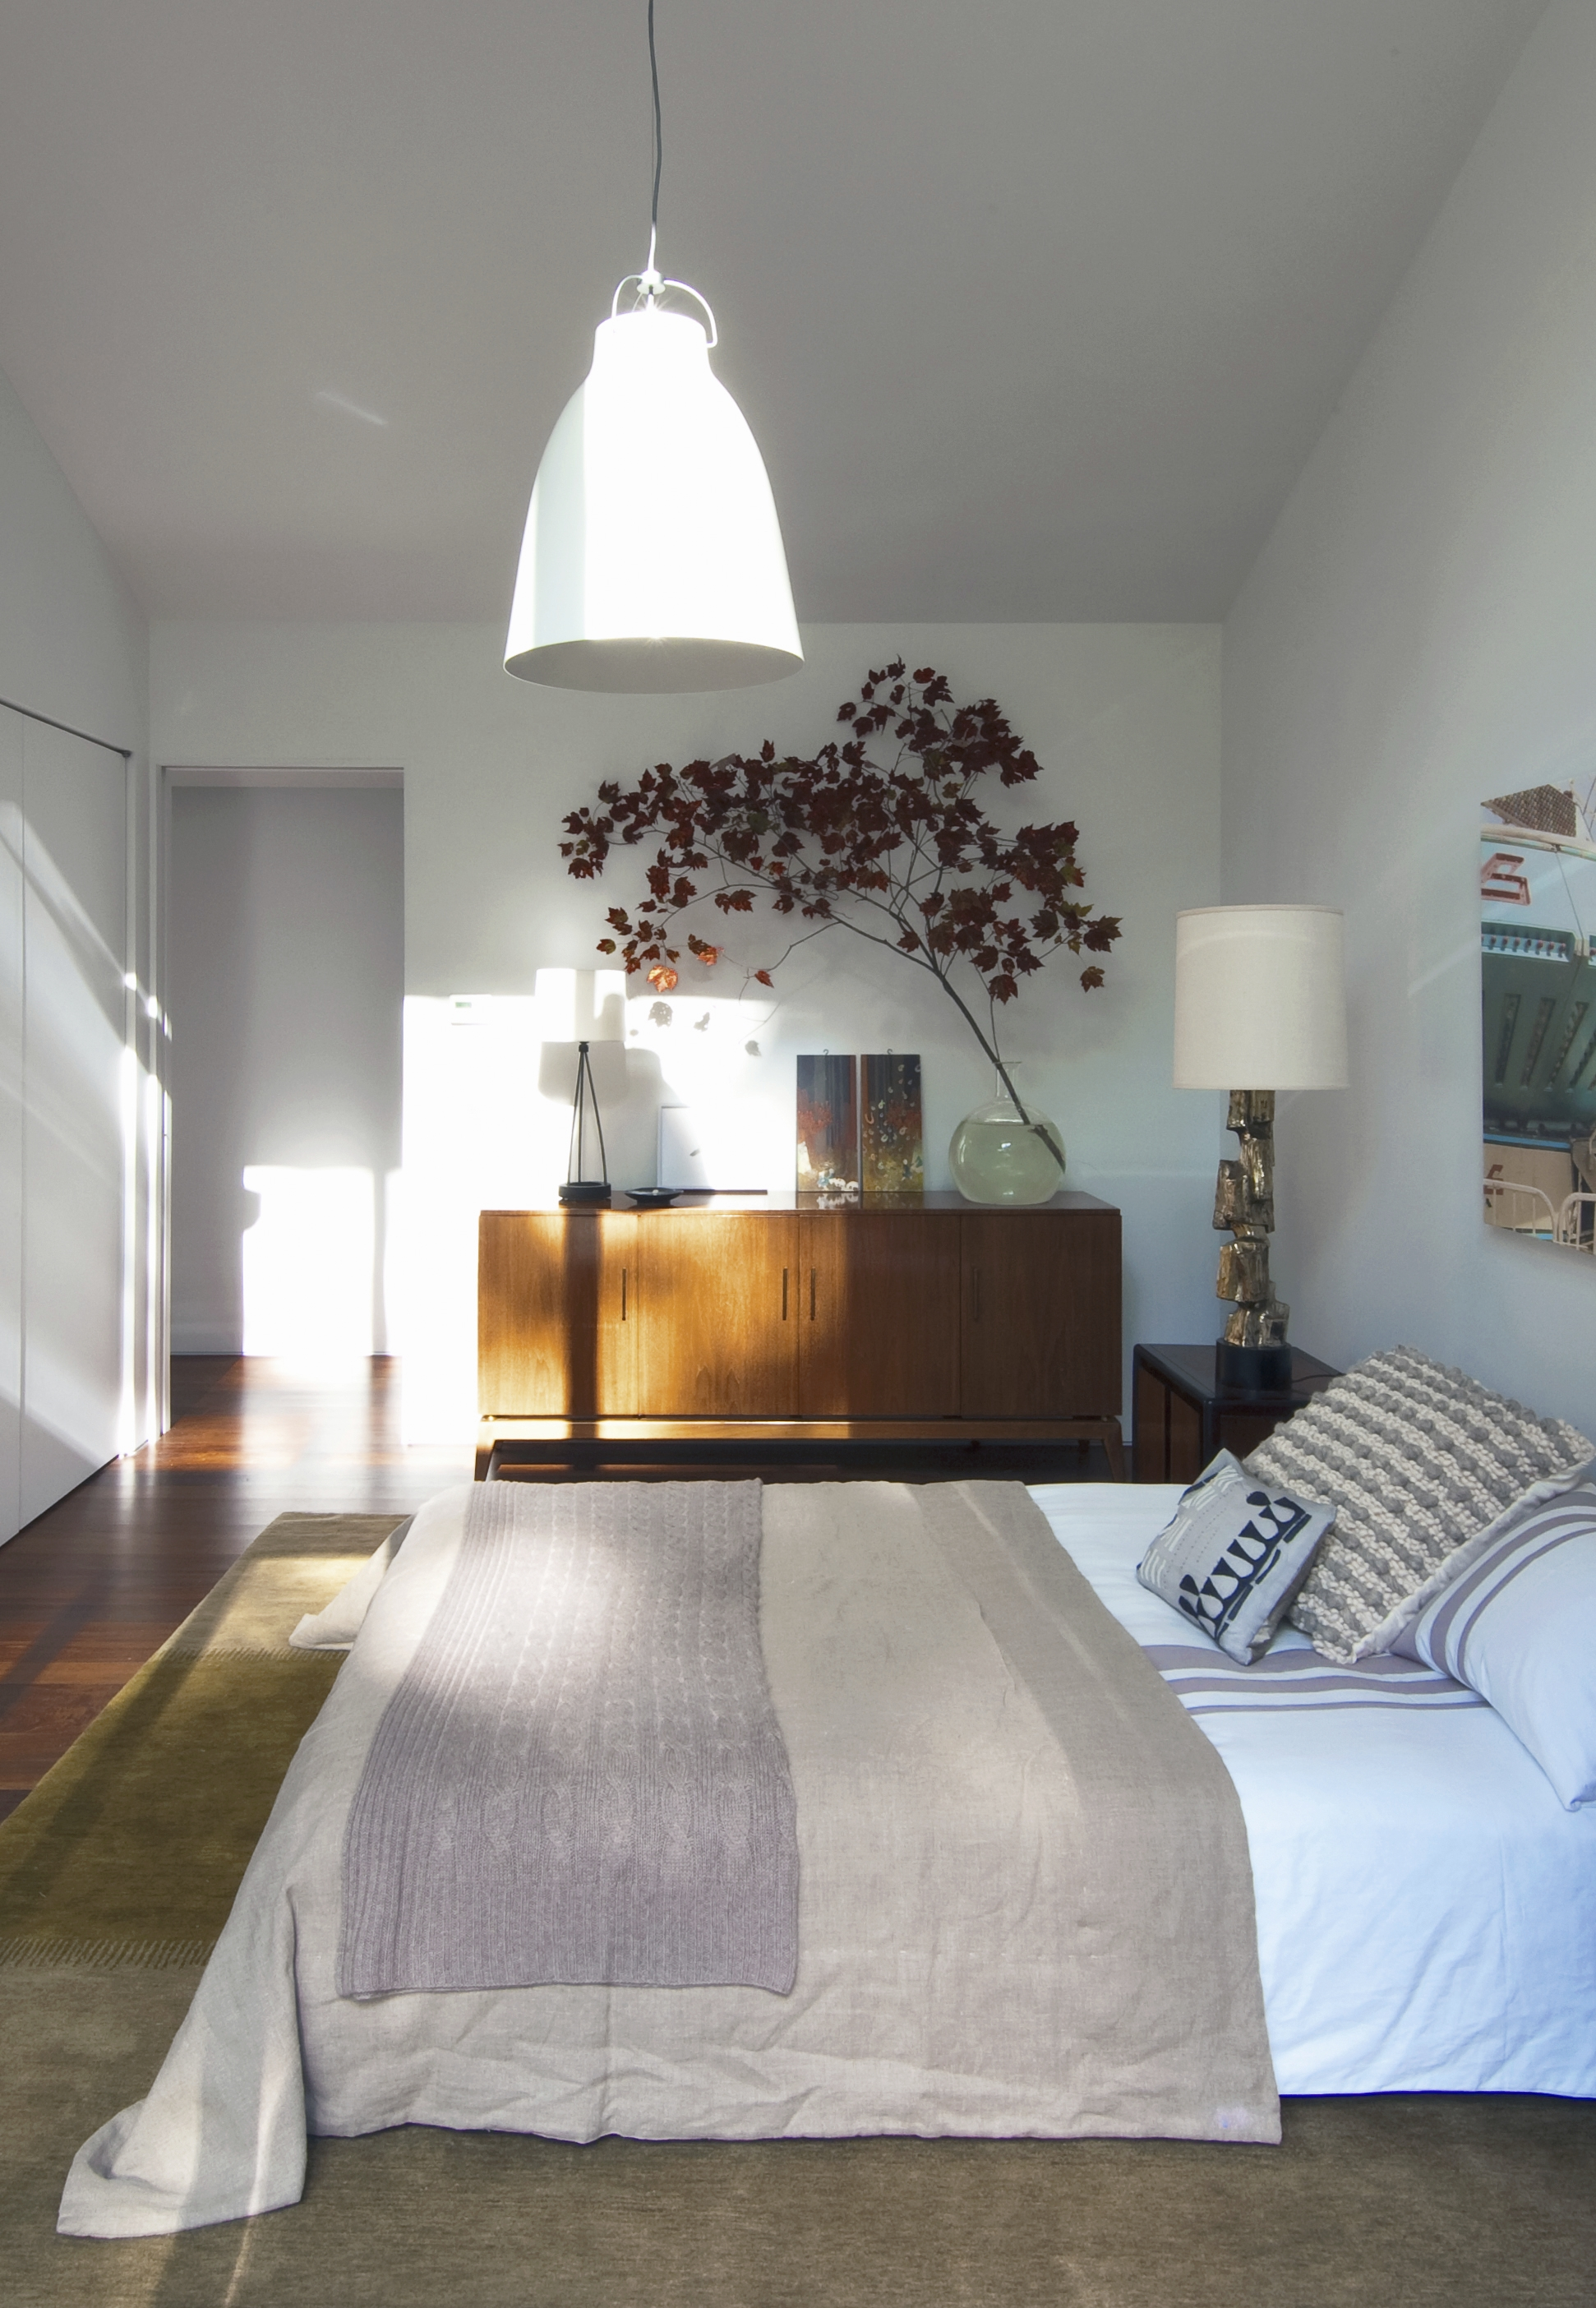 Texas Hill House Guest Bedroom with Credenza